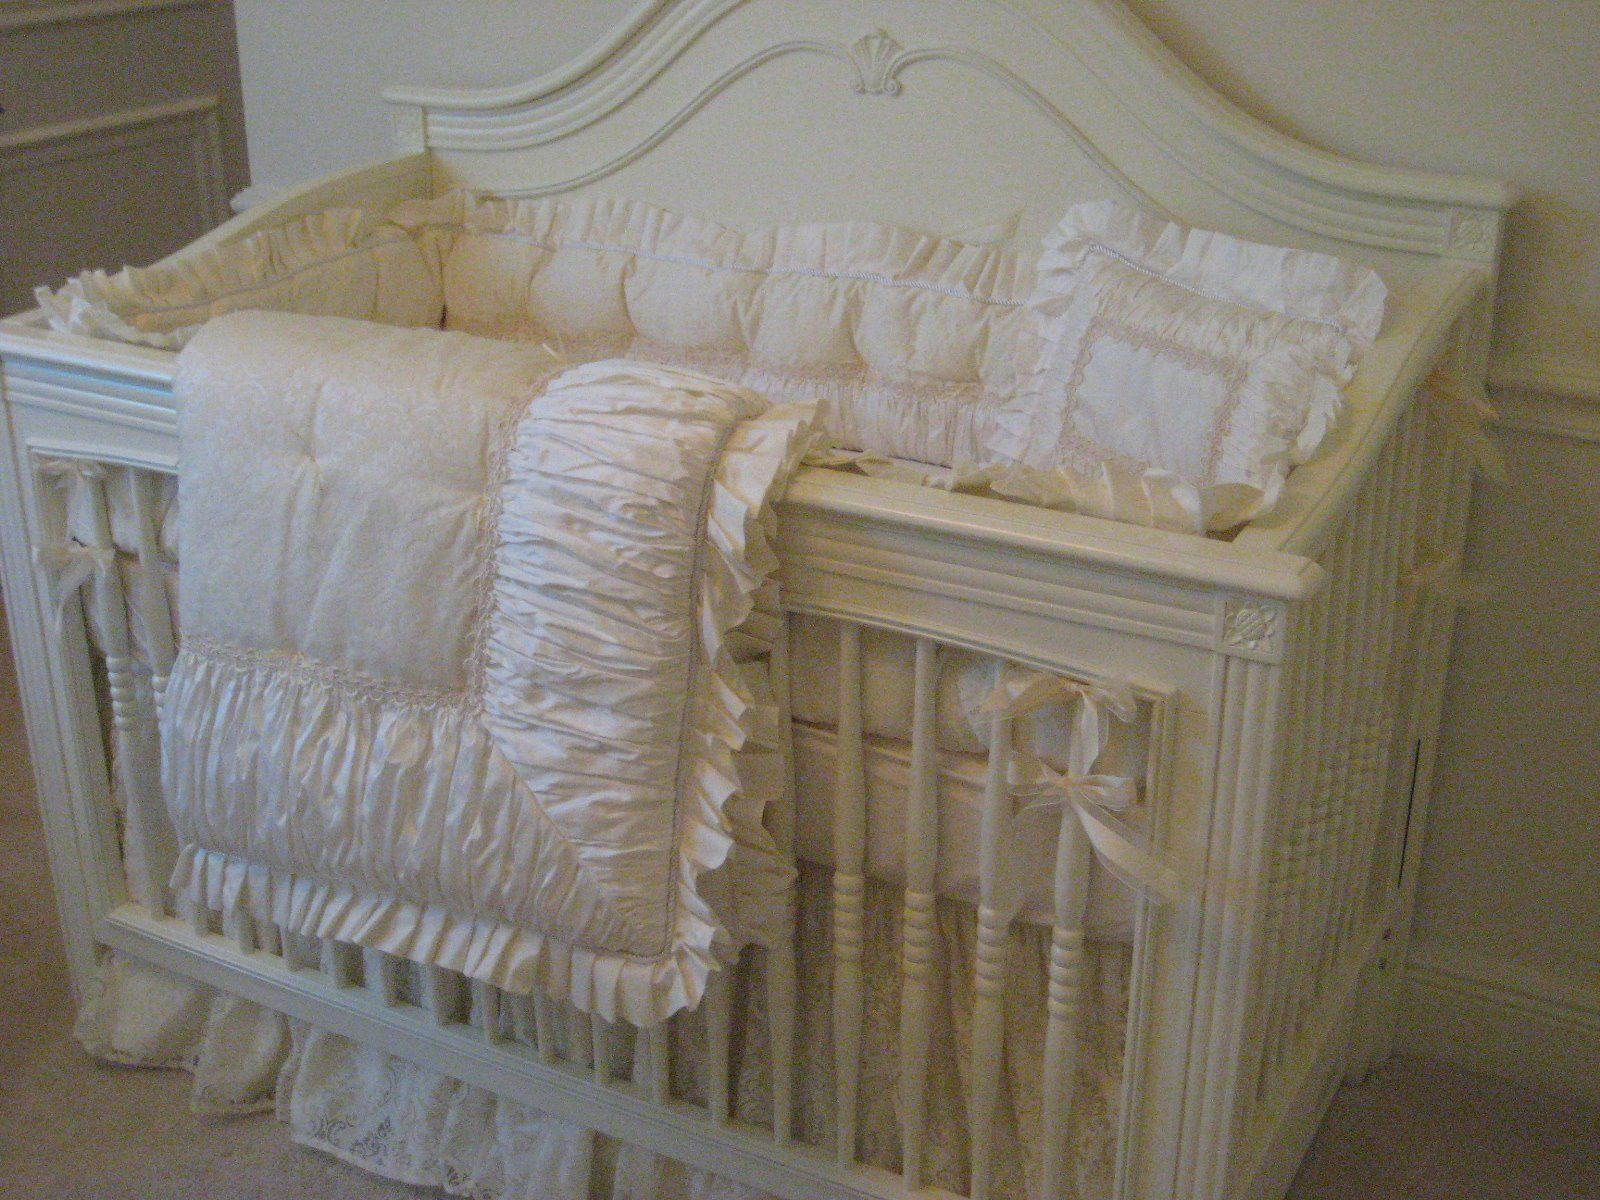 Natart crib for sale - Debby Crib With Nava Designs Bedding